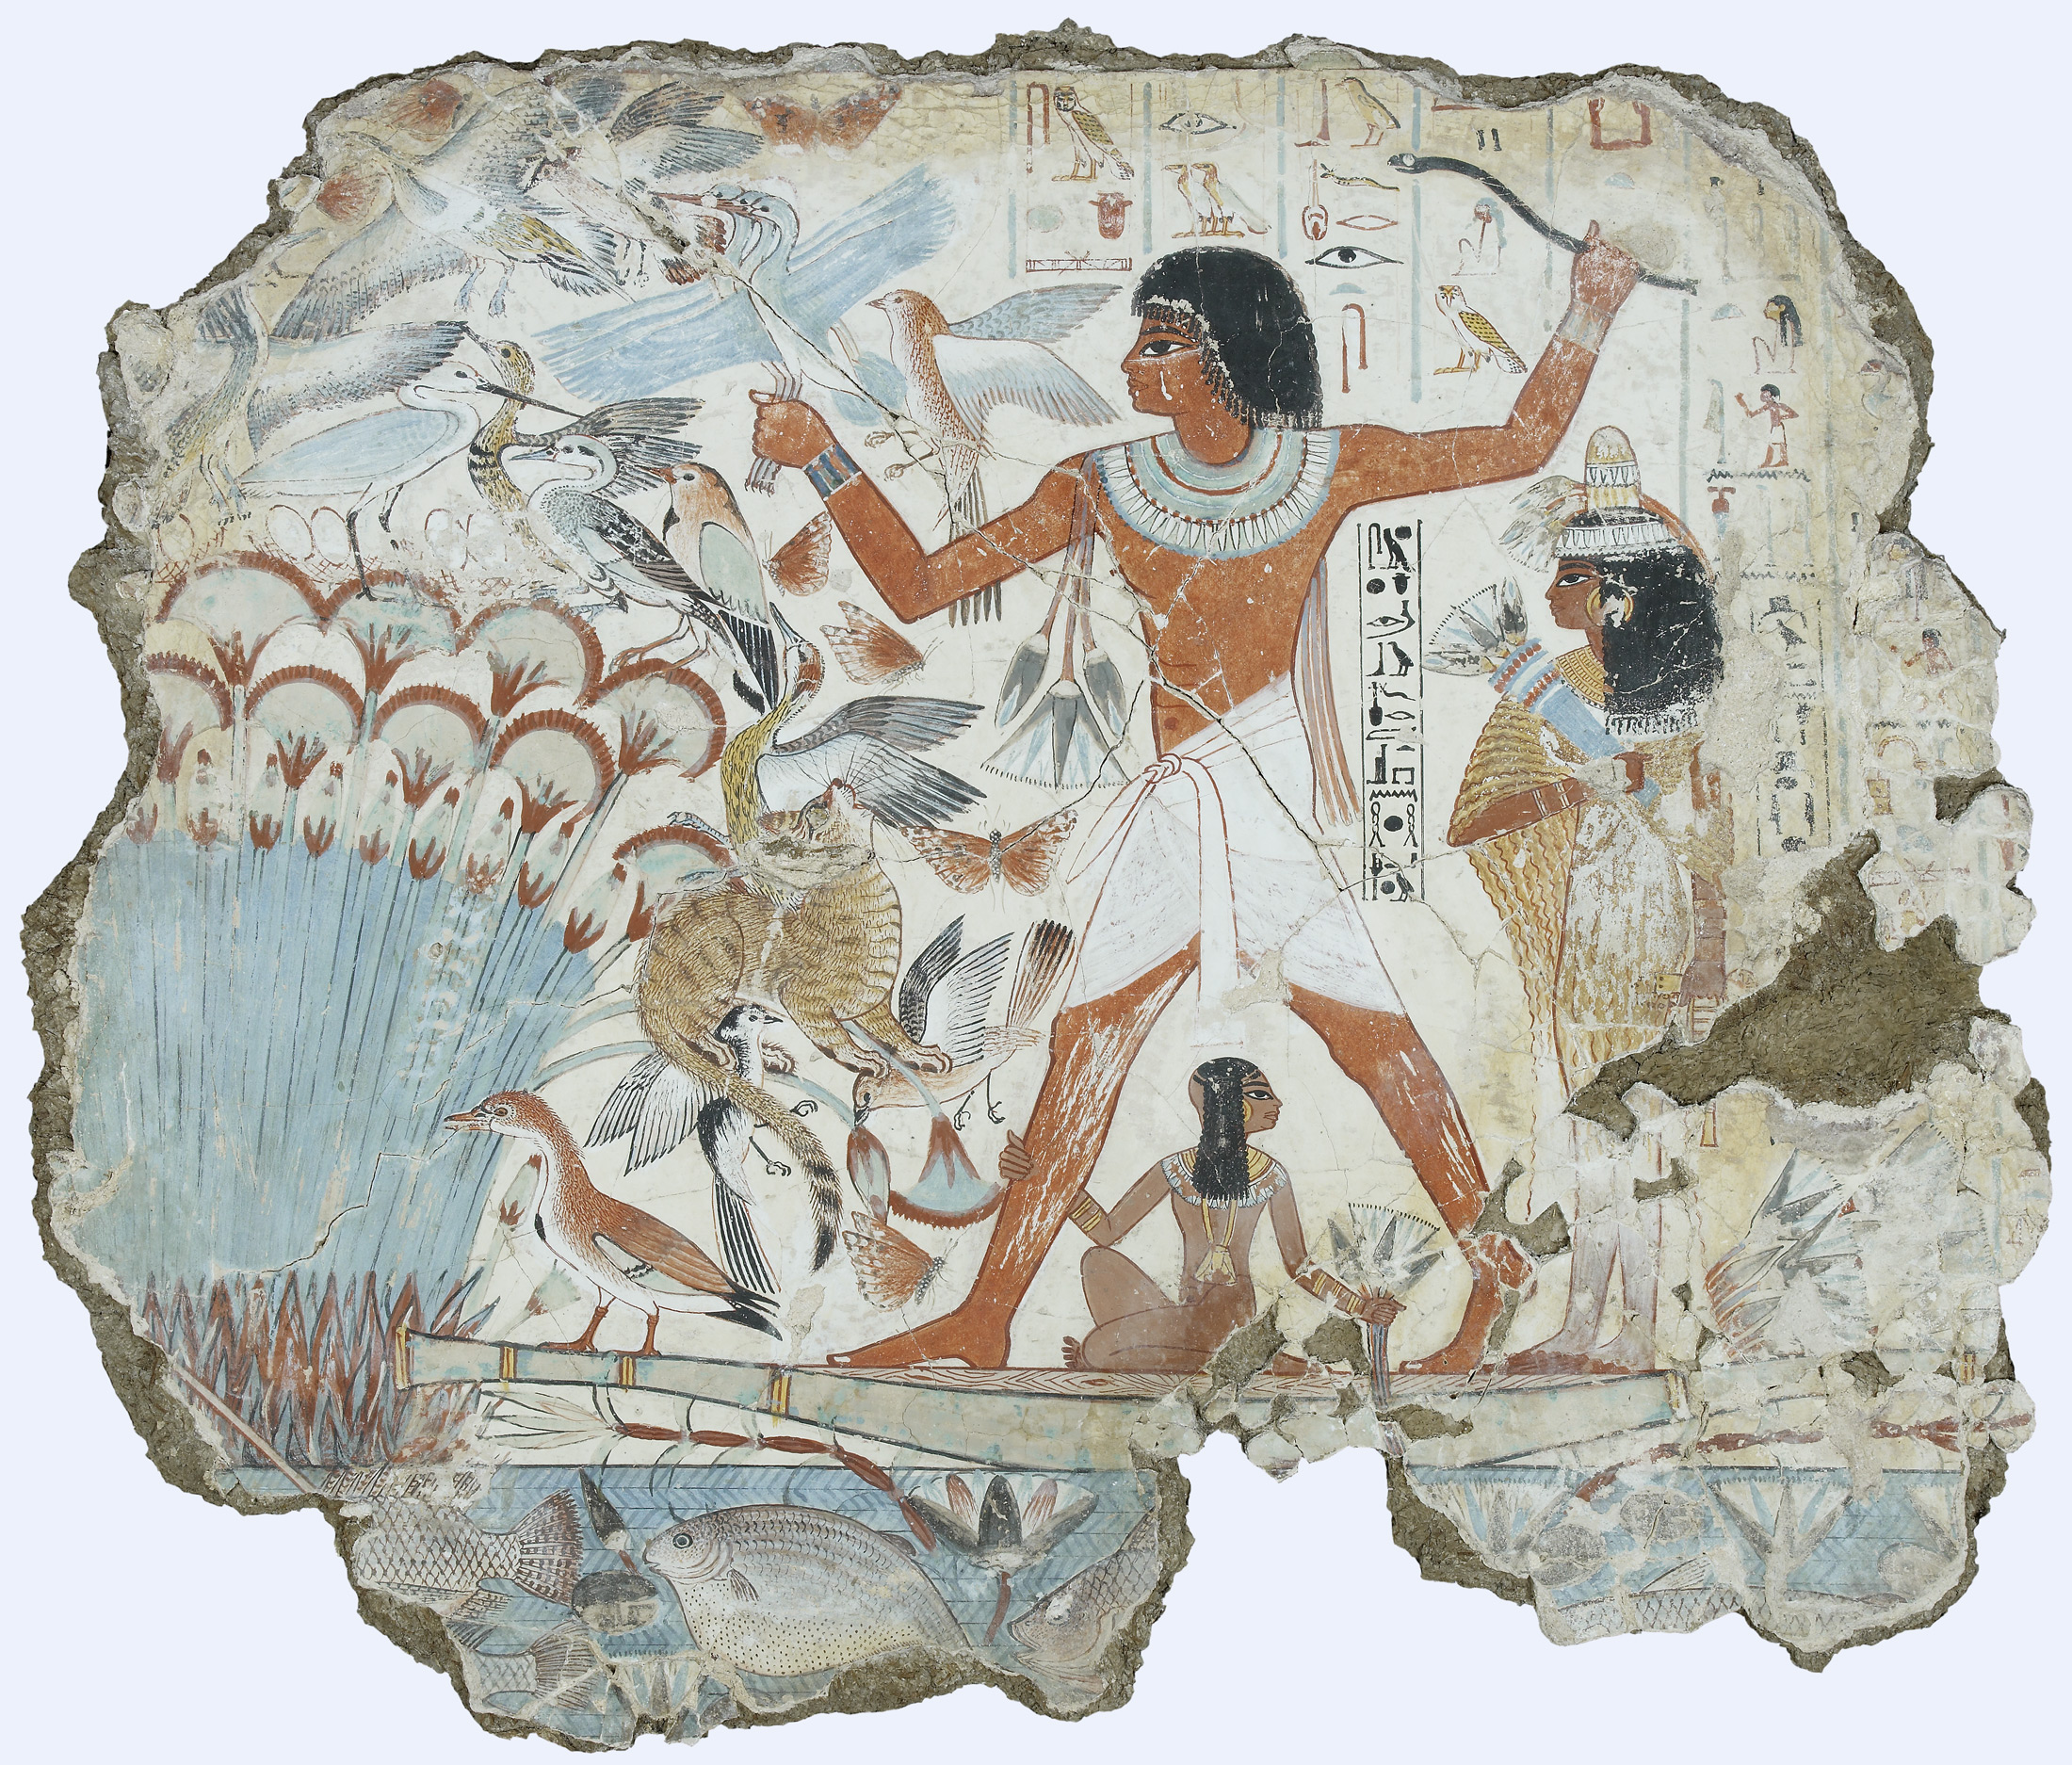 A fresco depicting the ancient Egyptian politician Nebamun hunting birds, 1350 BC. British Museum (London).